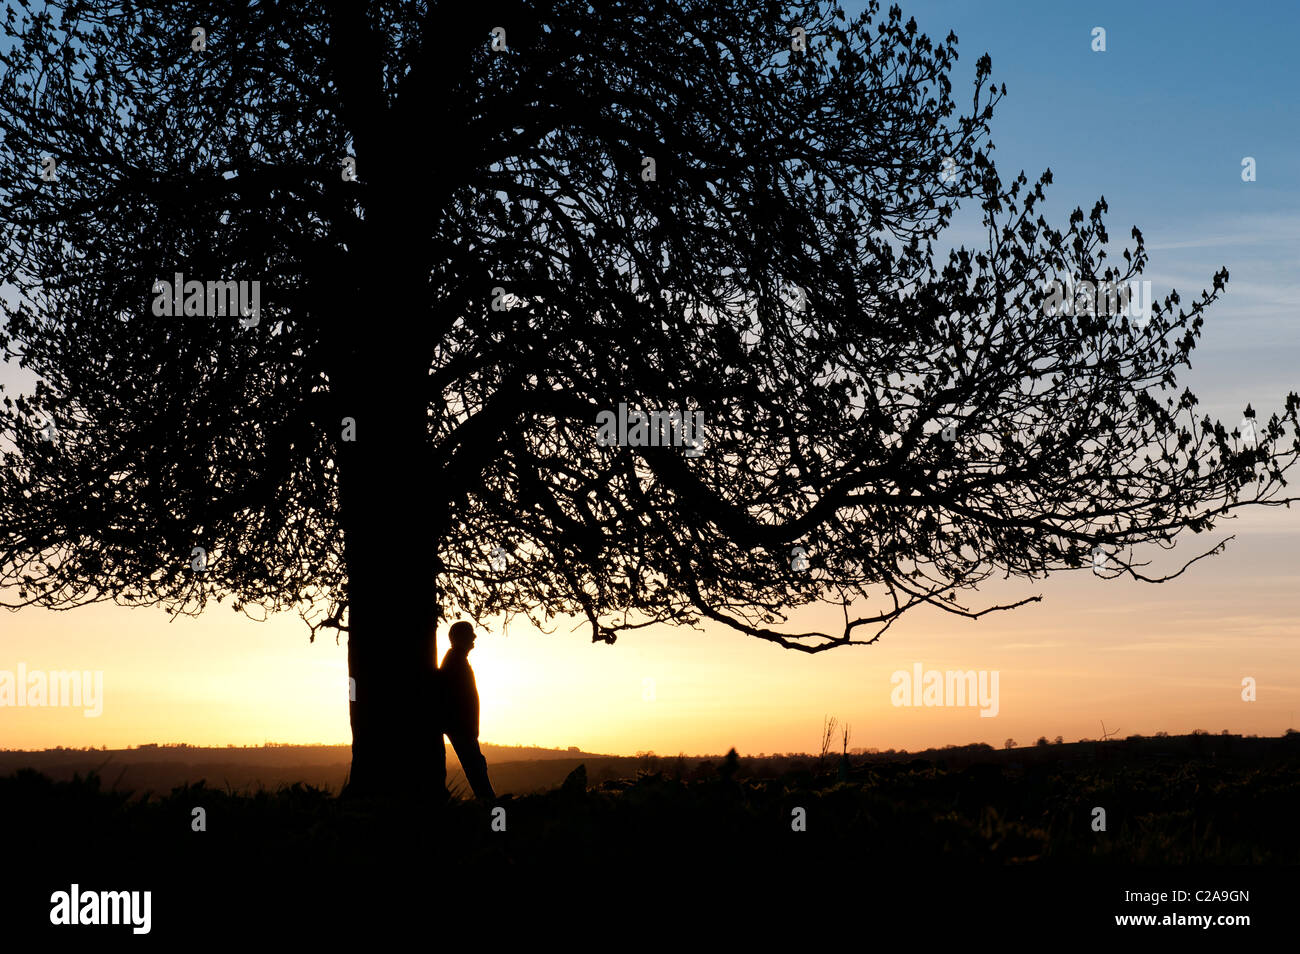 Aesculus hippocastanum. Man leaning against Horse Chestnut tree at sunset. UK. Silhouette - Stock Image